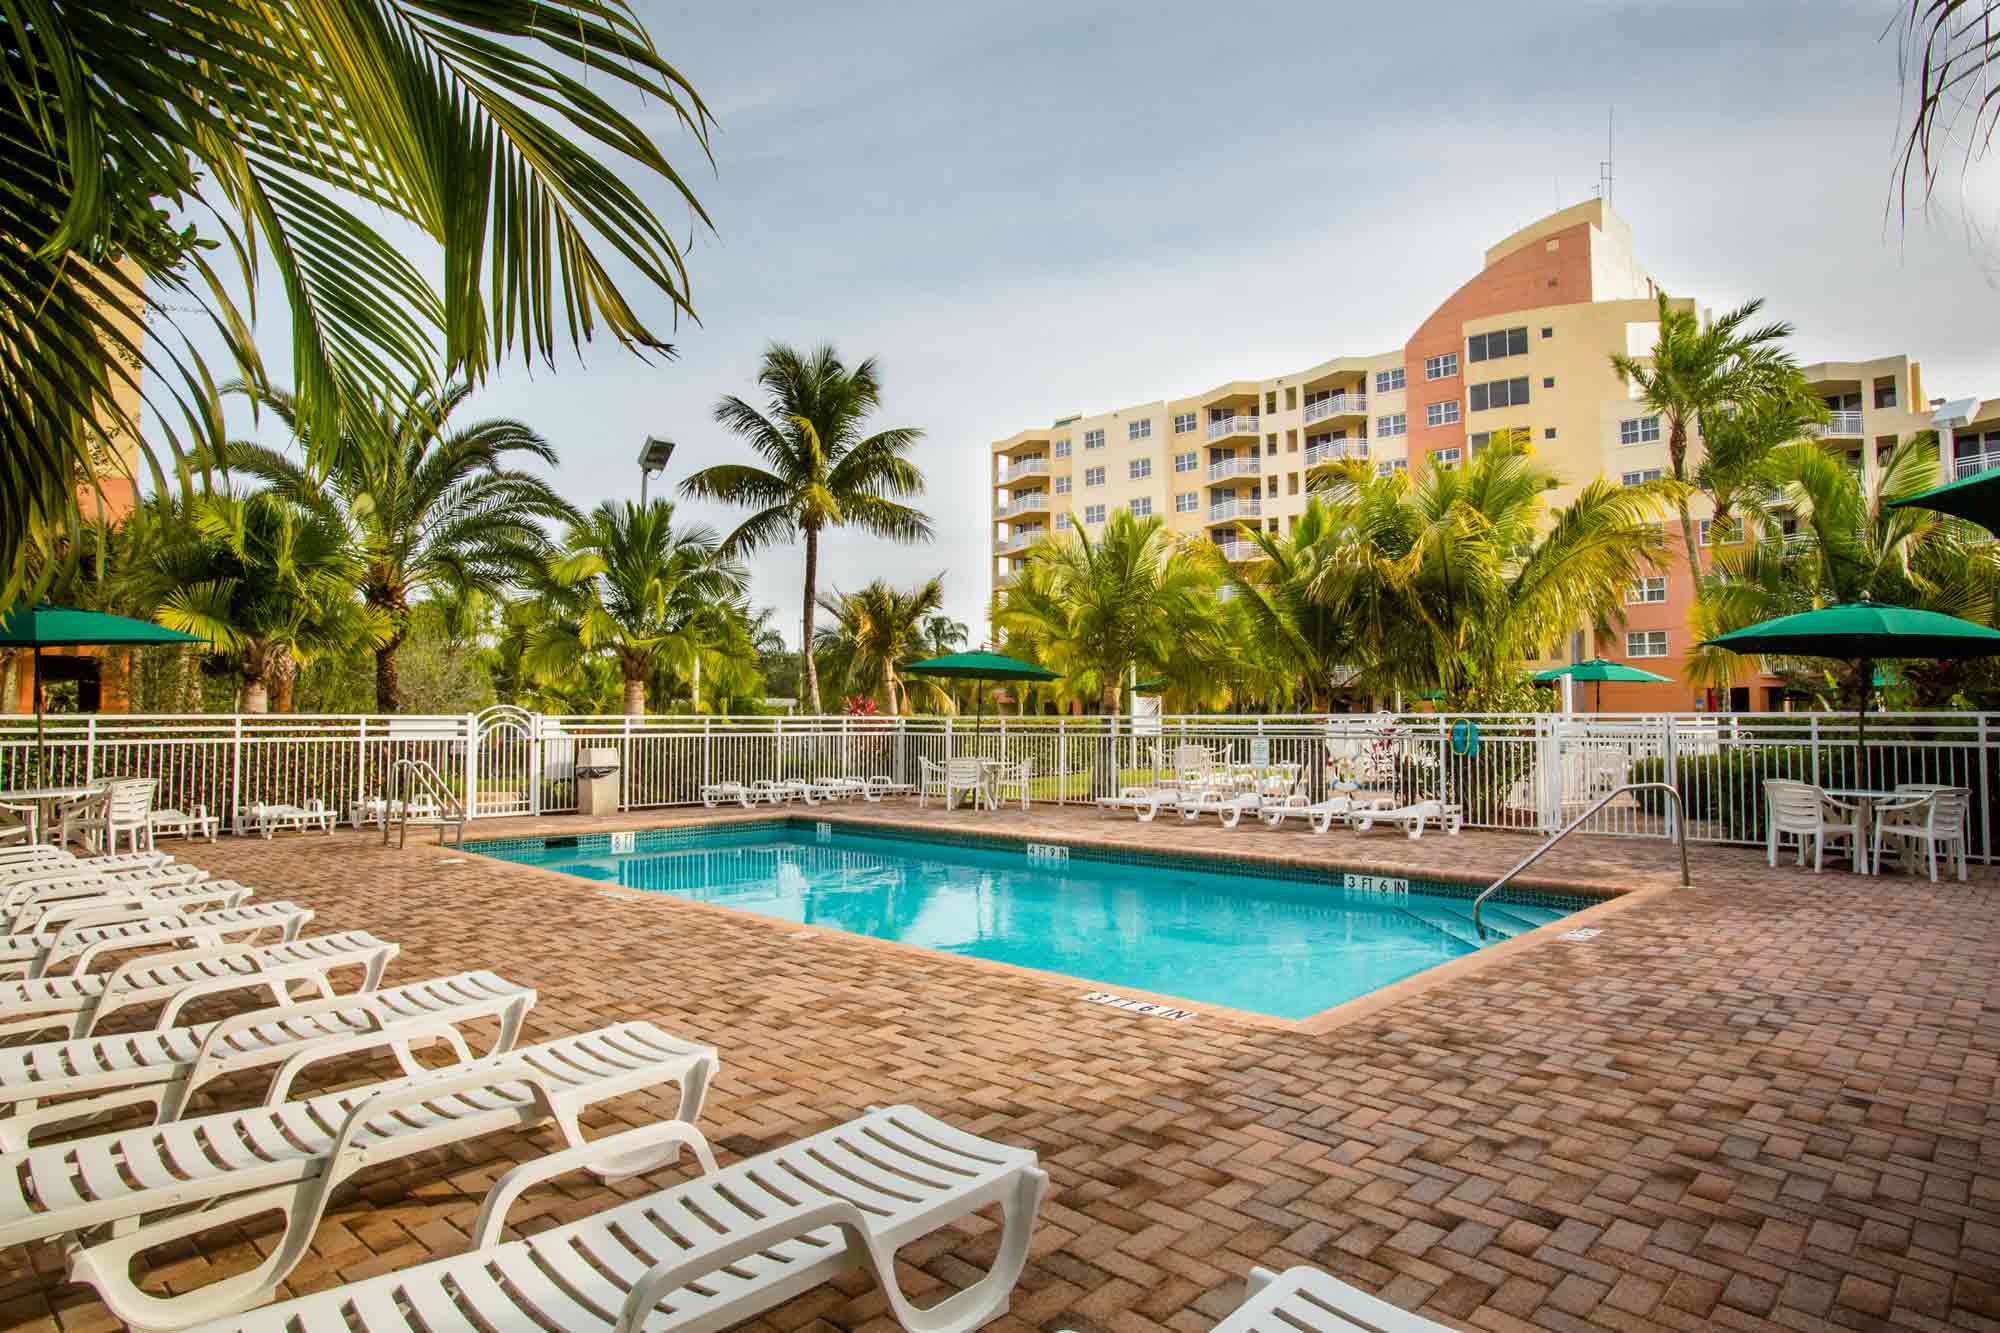 Vacation Village at Bonaventure  Hotels in Weston